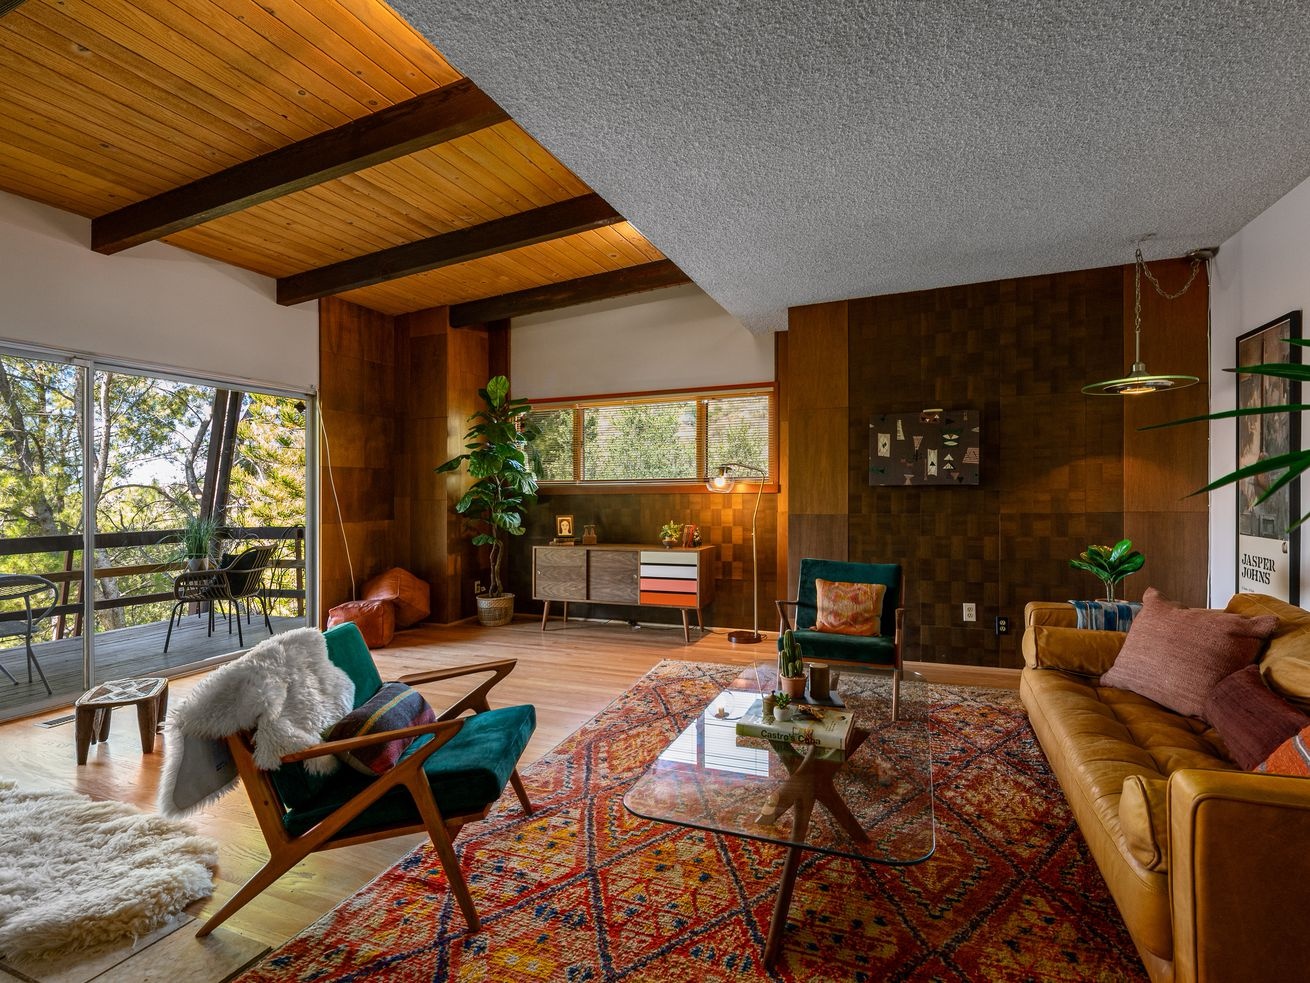 Living room with sliding glass doors and wood-paneled walls.